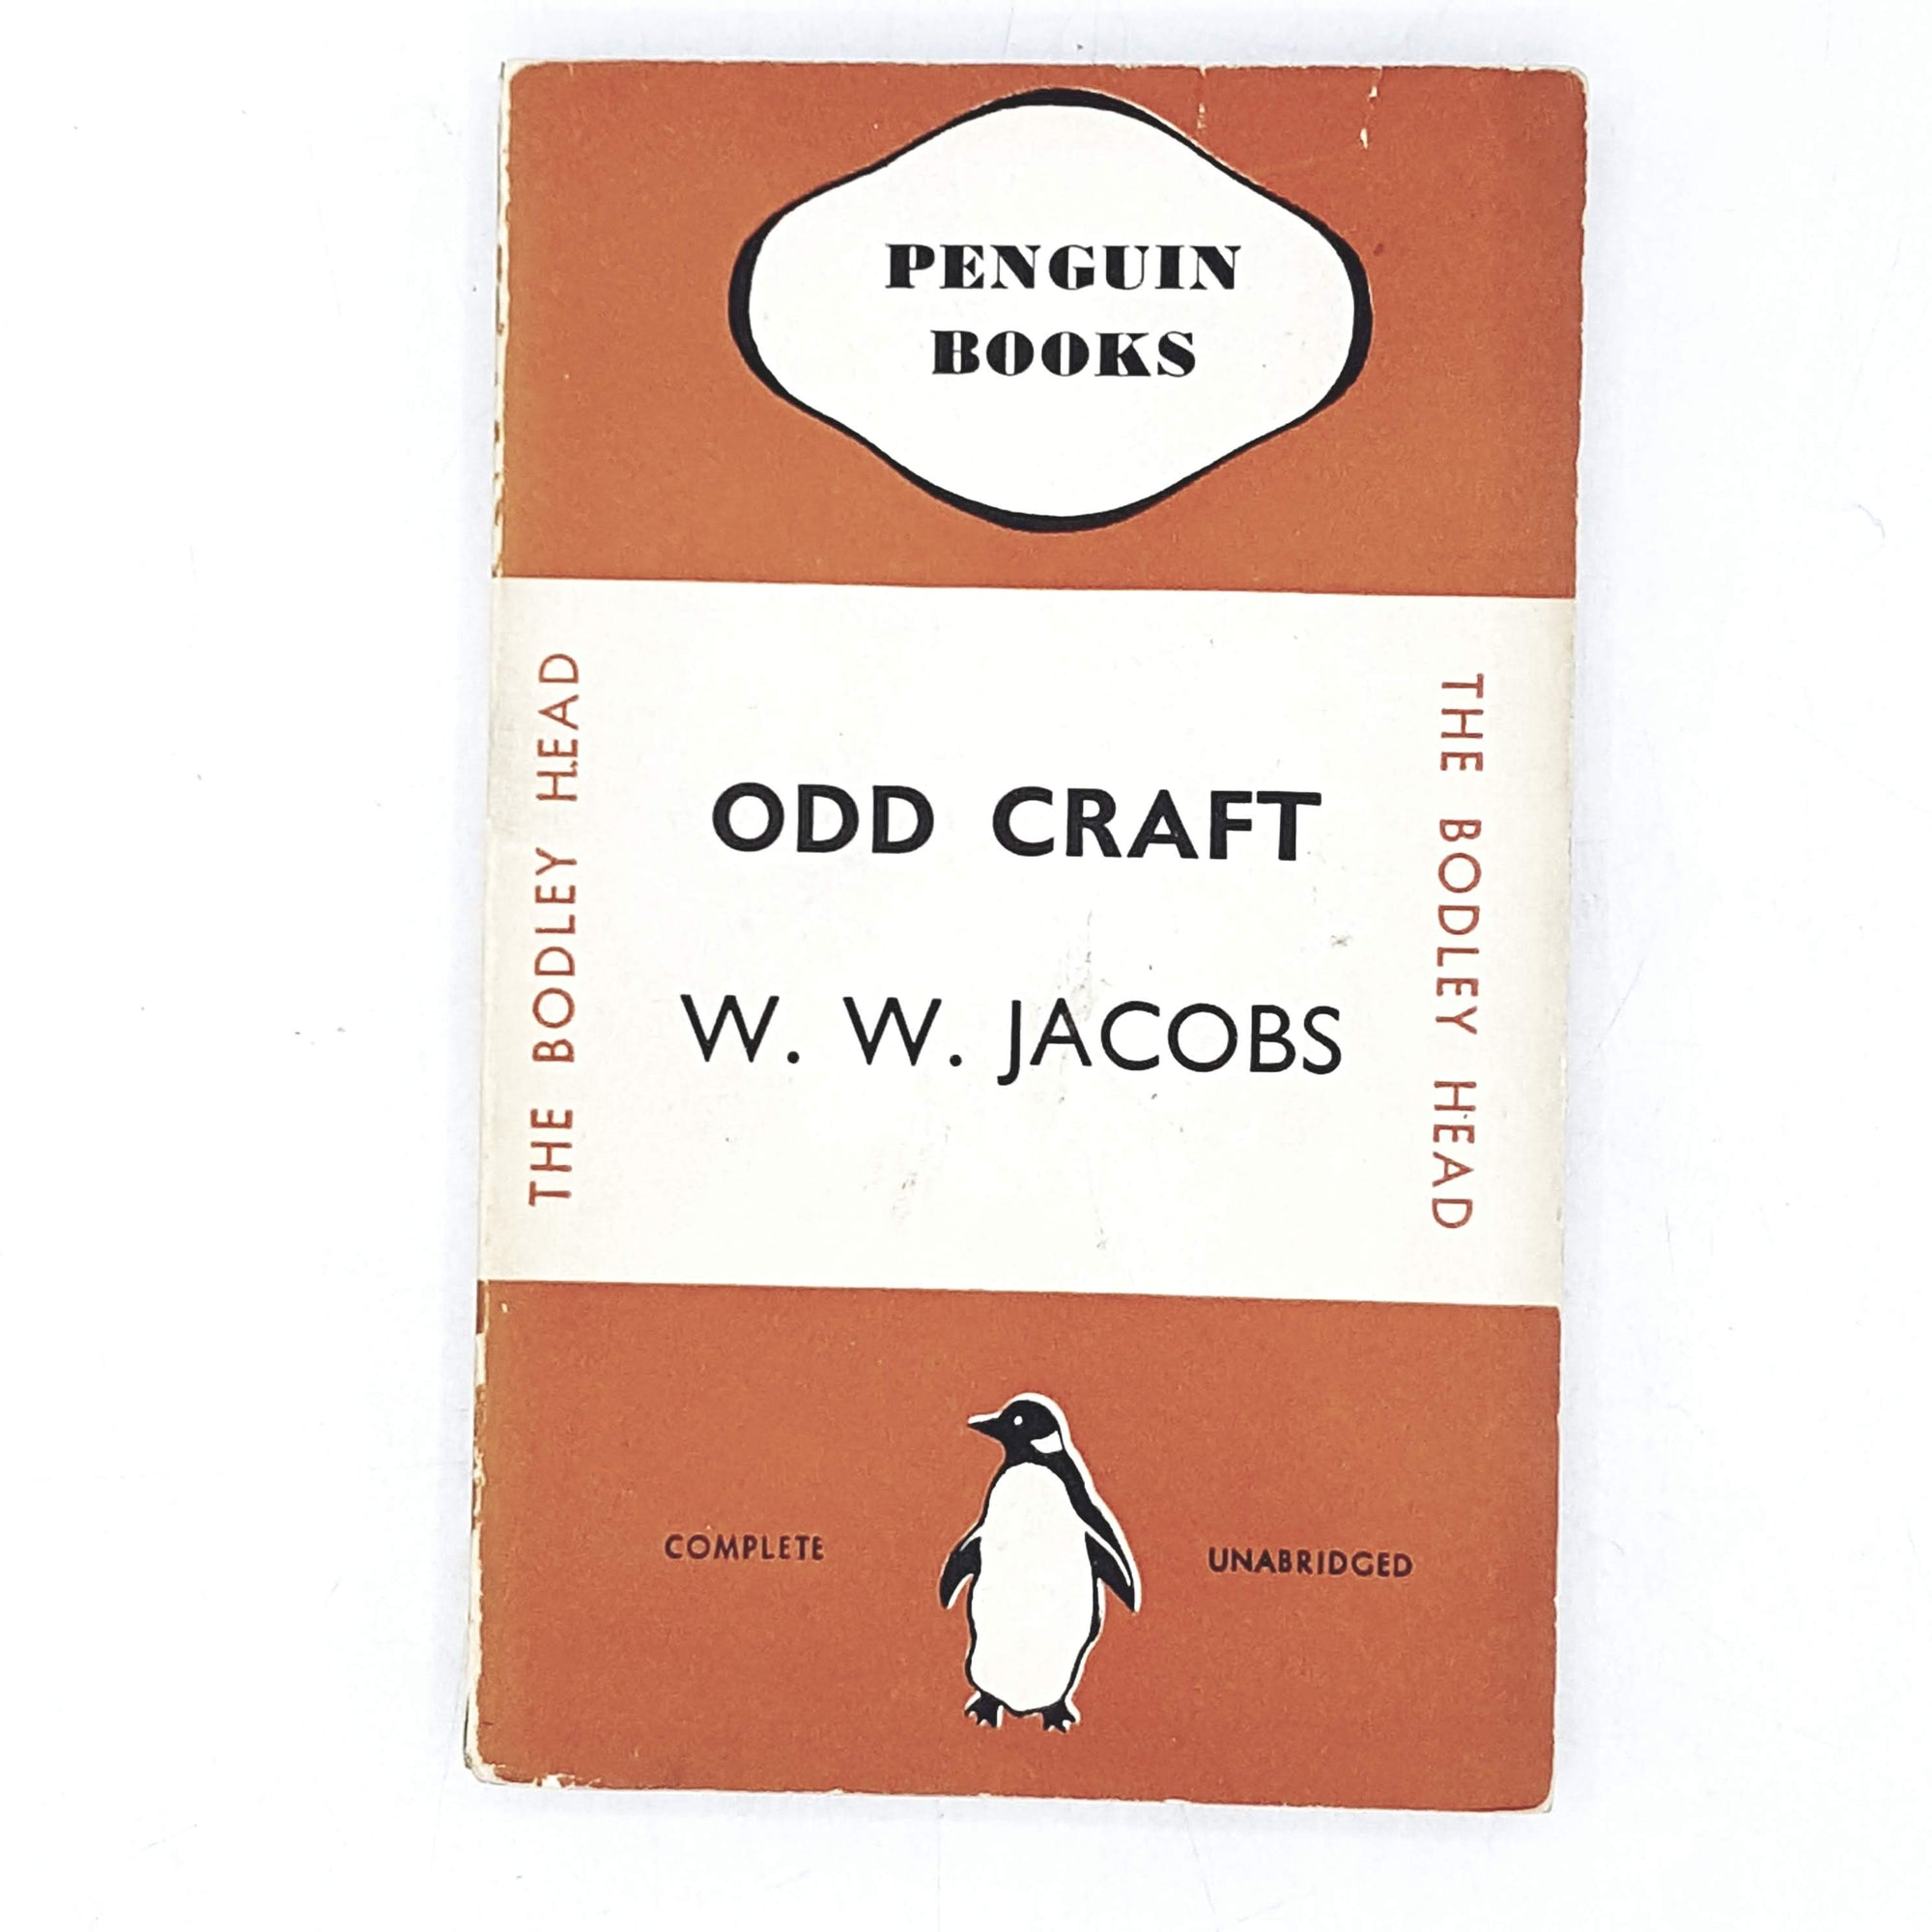 Vintage Penguin Odd Craft by W. W. Jacobs 1936